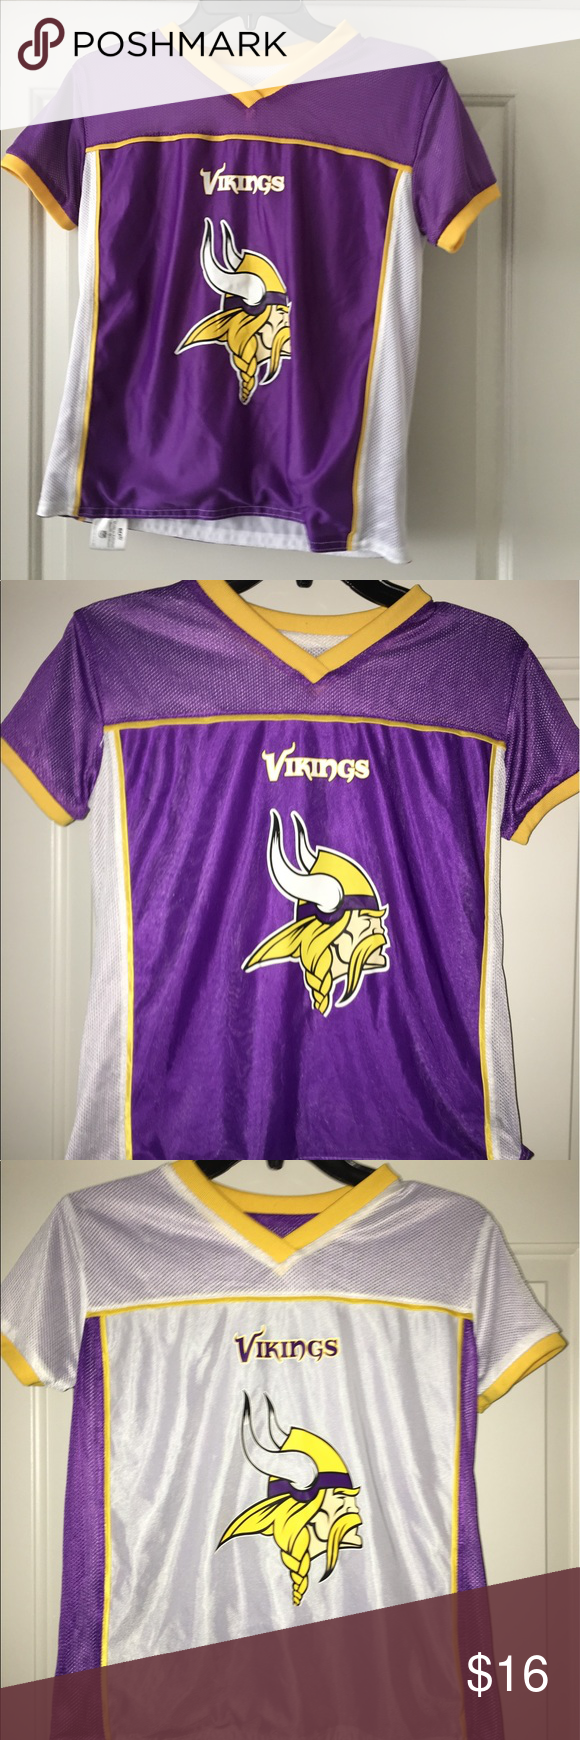 6e22e9149 Vikings reversible flag football jersey sz  M Thank you for viewing my  listing